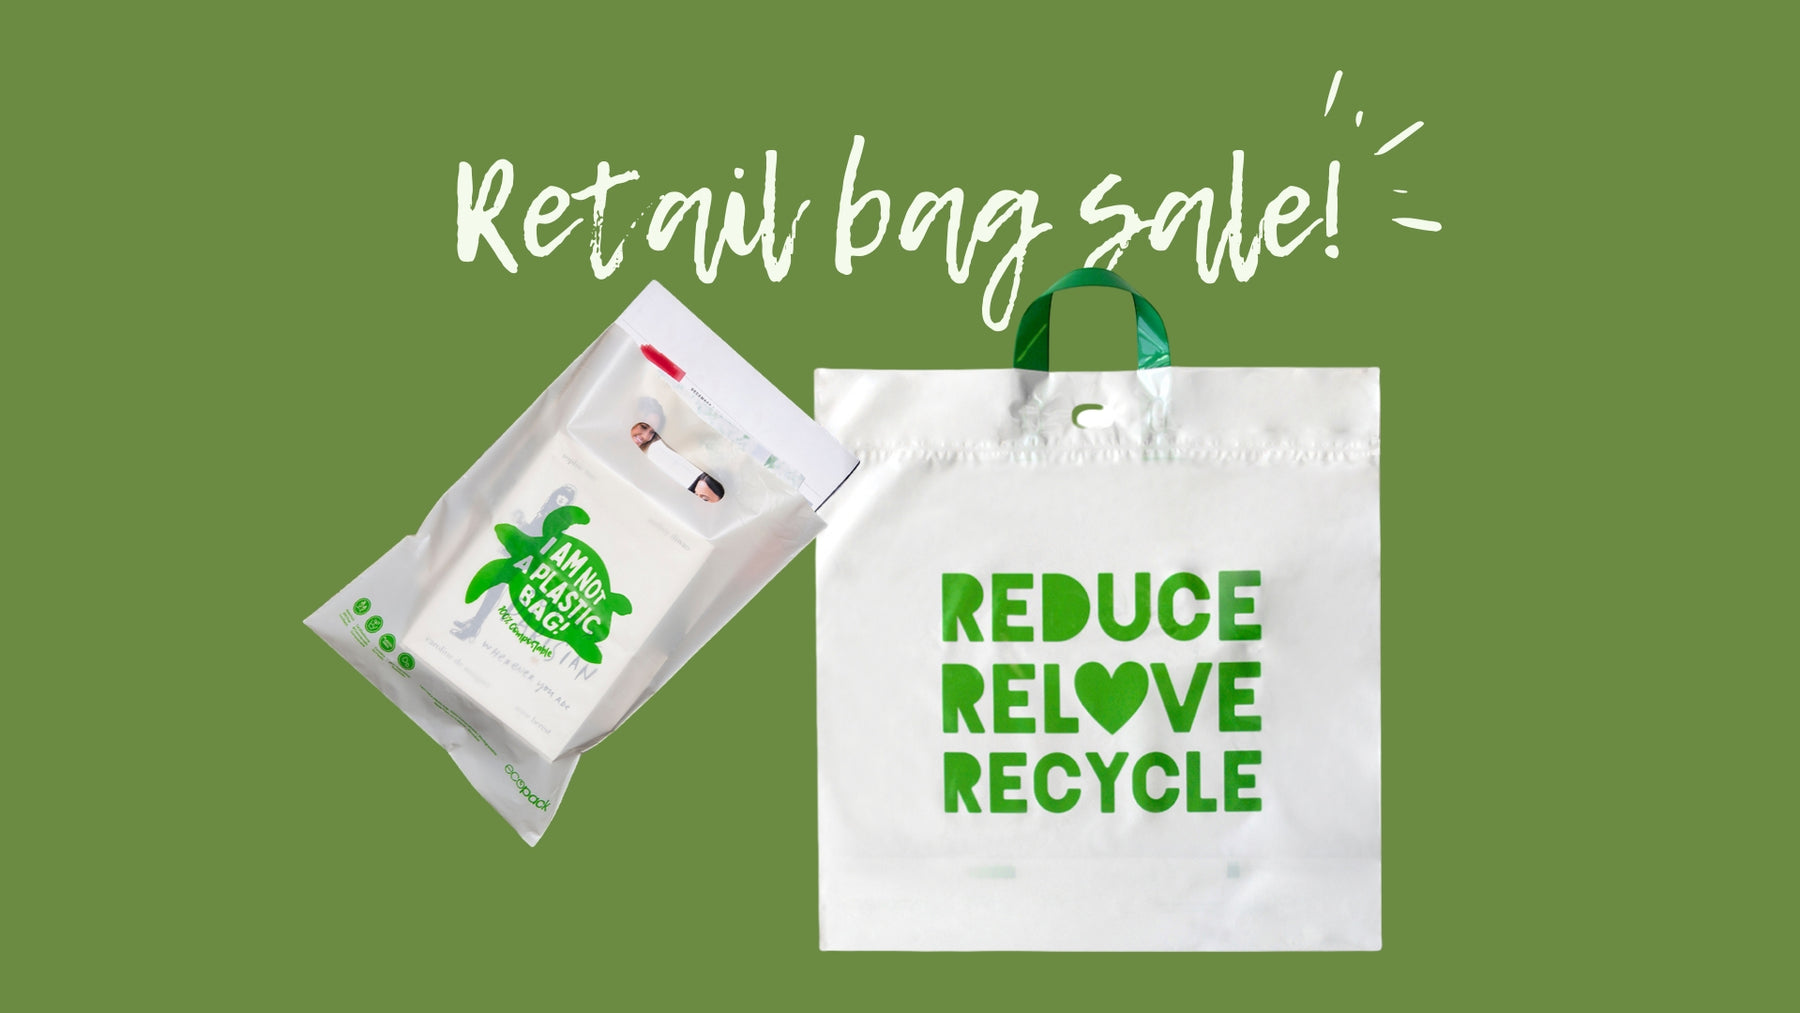 Retail bags priced to clear